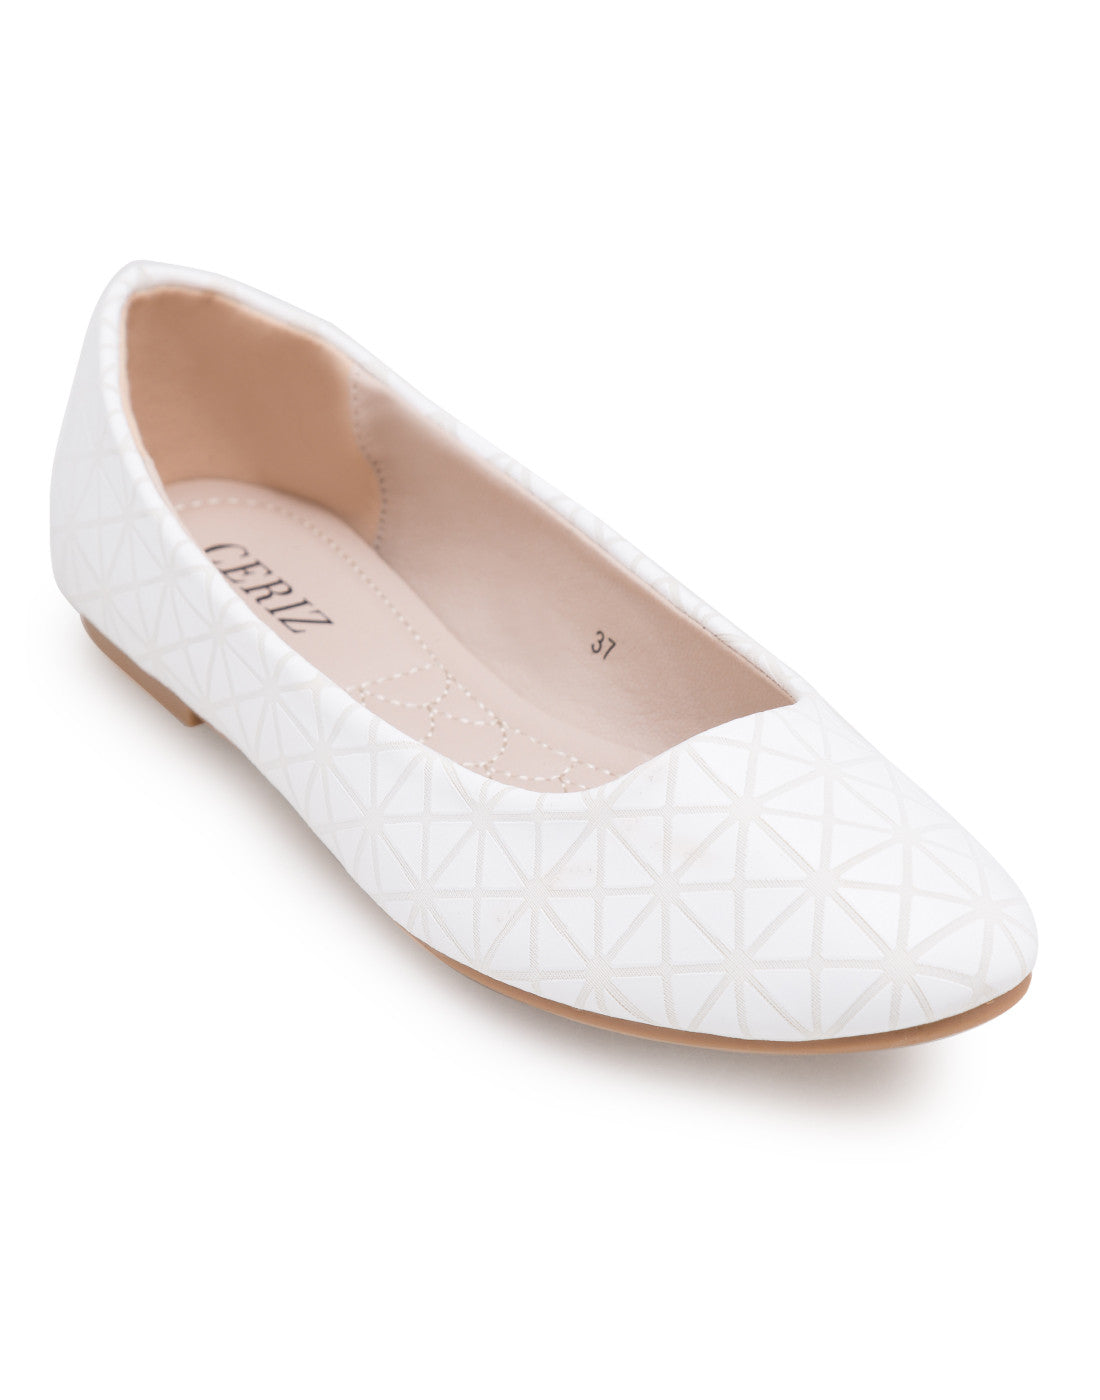 Issi Ballet Flat